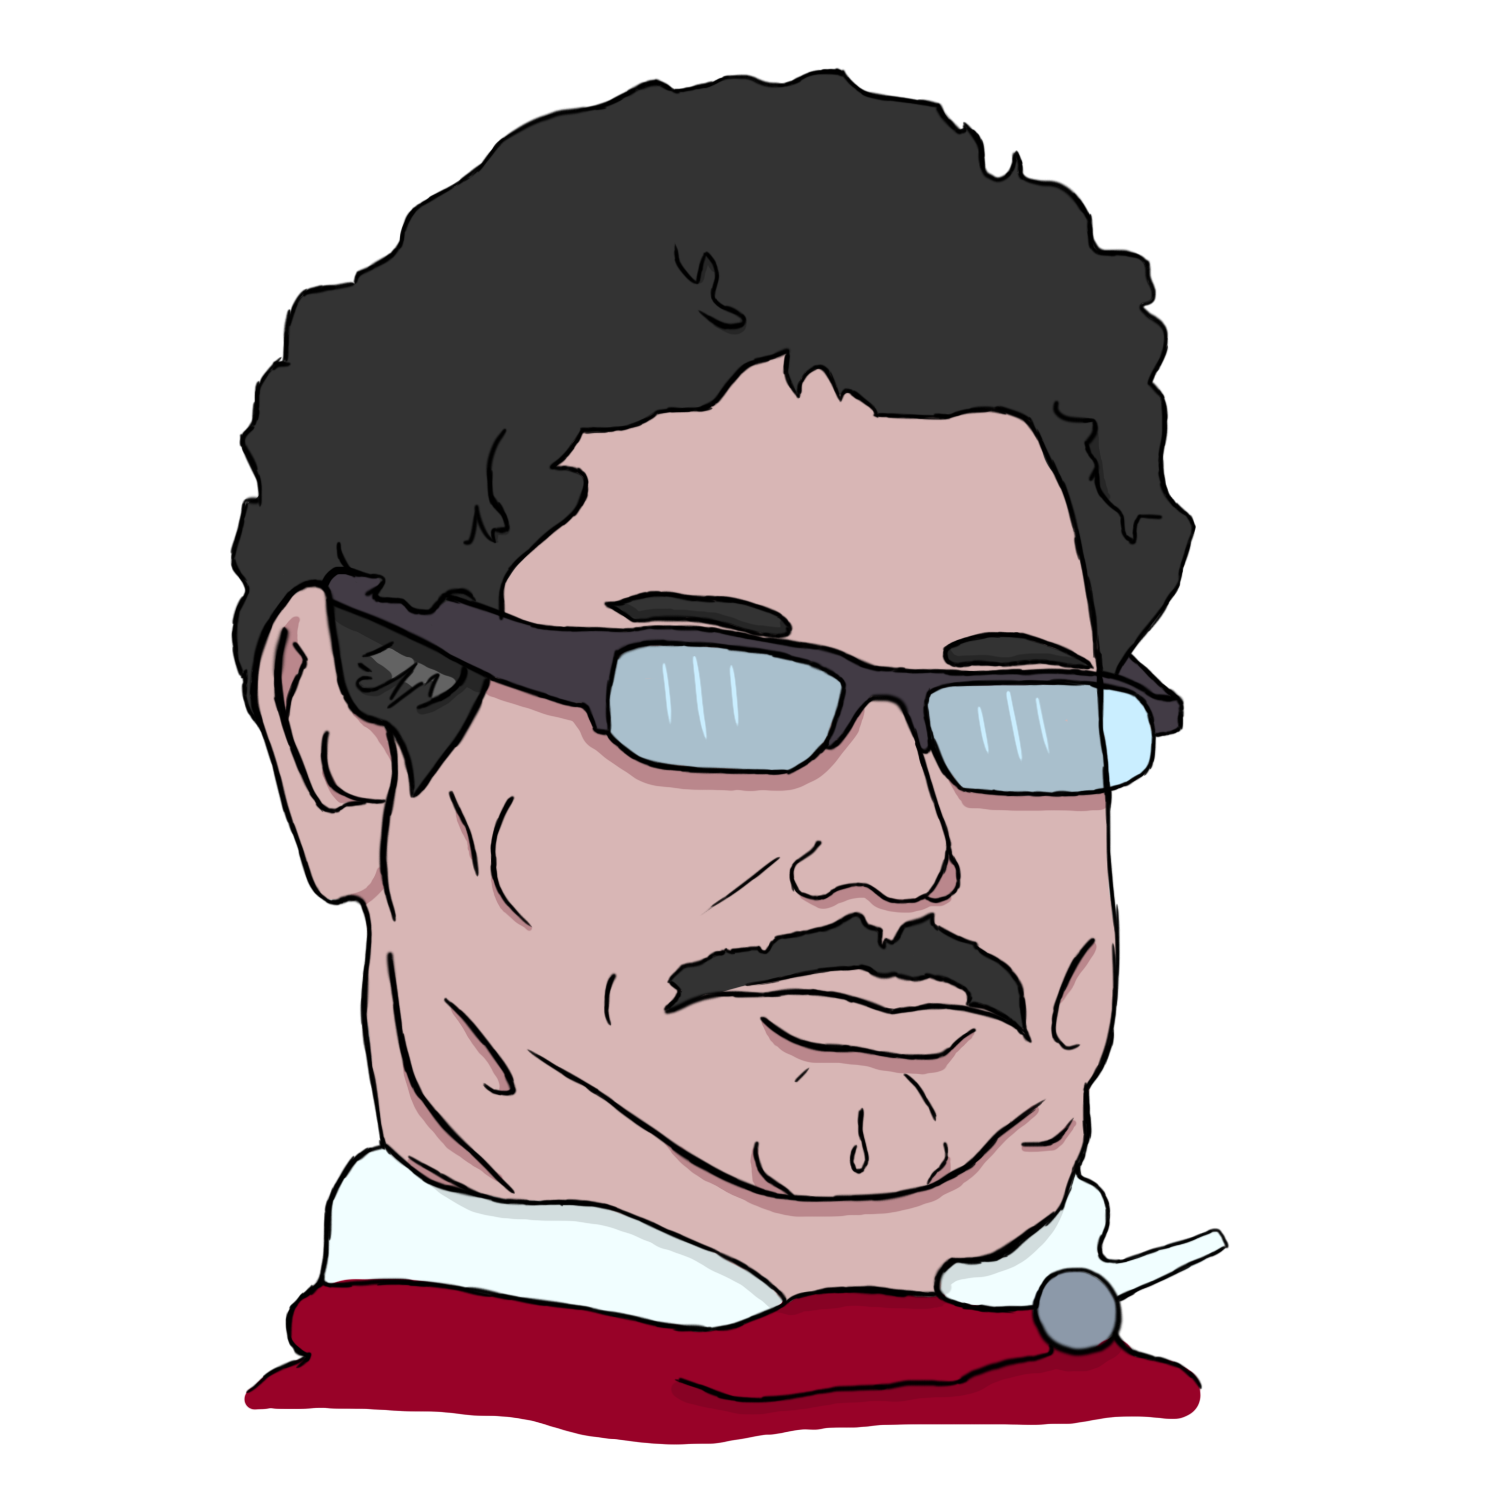 Chin drawing papa. Got my first tablet